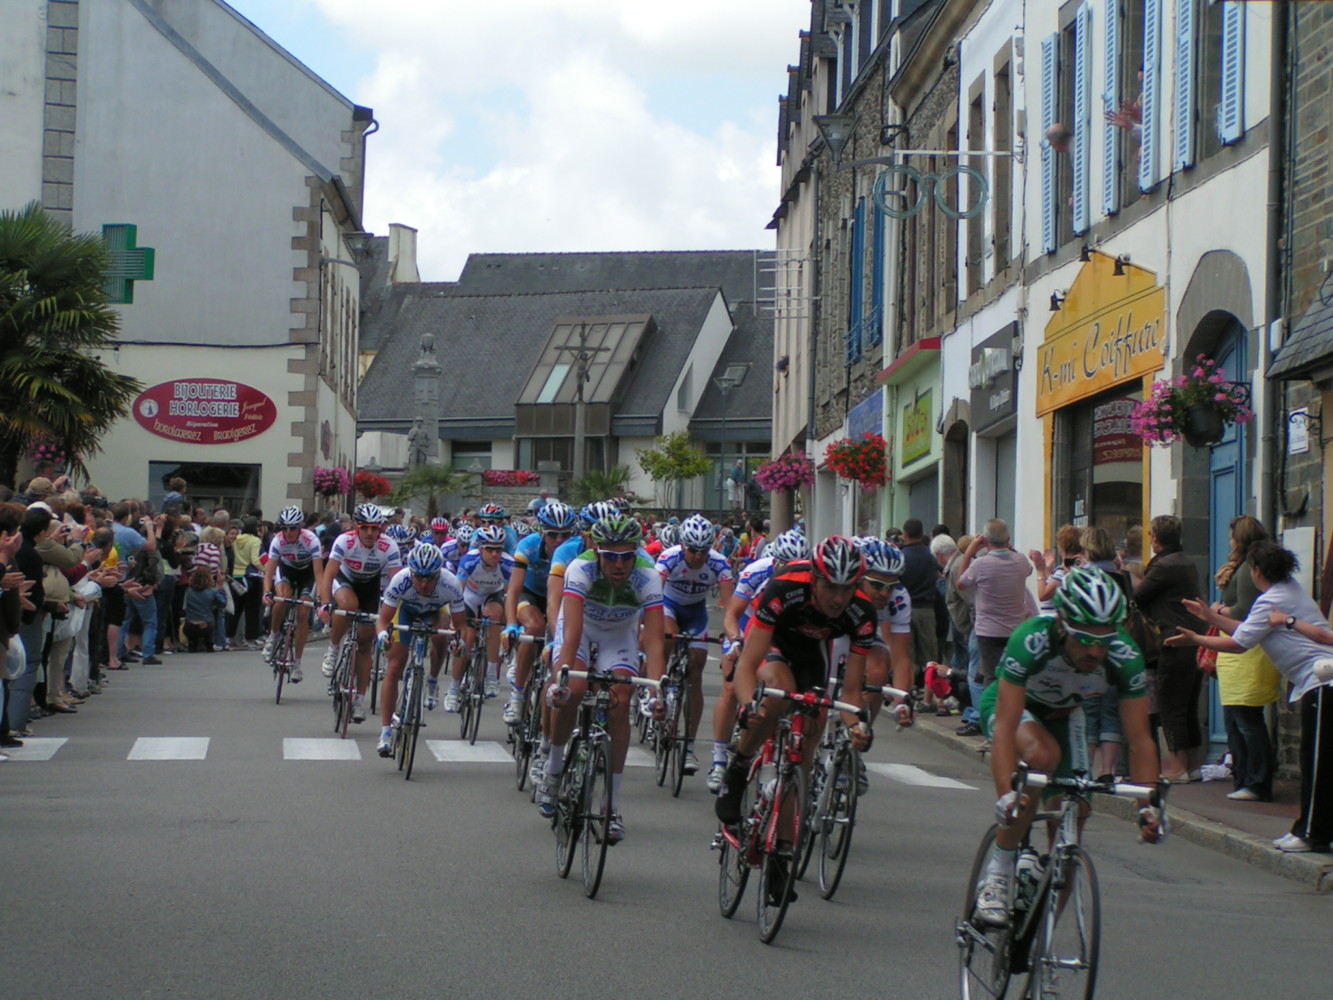 TOUR-DE-FRANCE-2008-CHATEAUNEUF-DU-FAOU-15